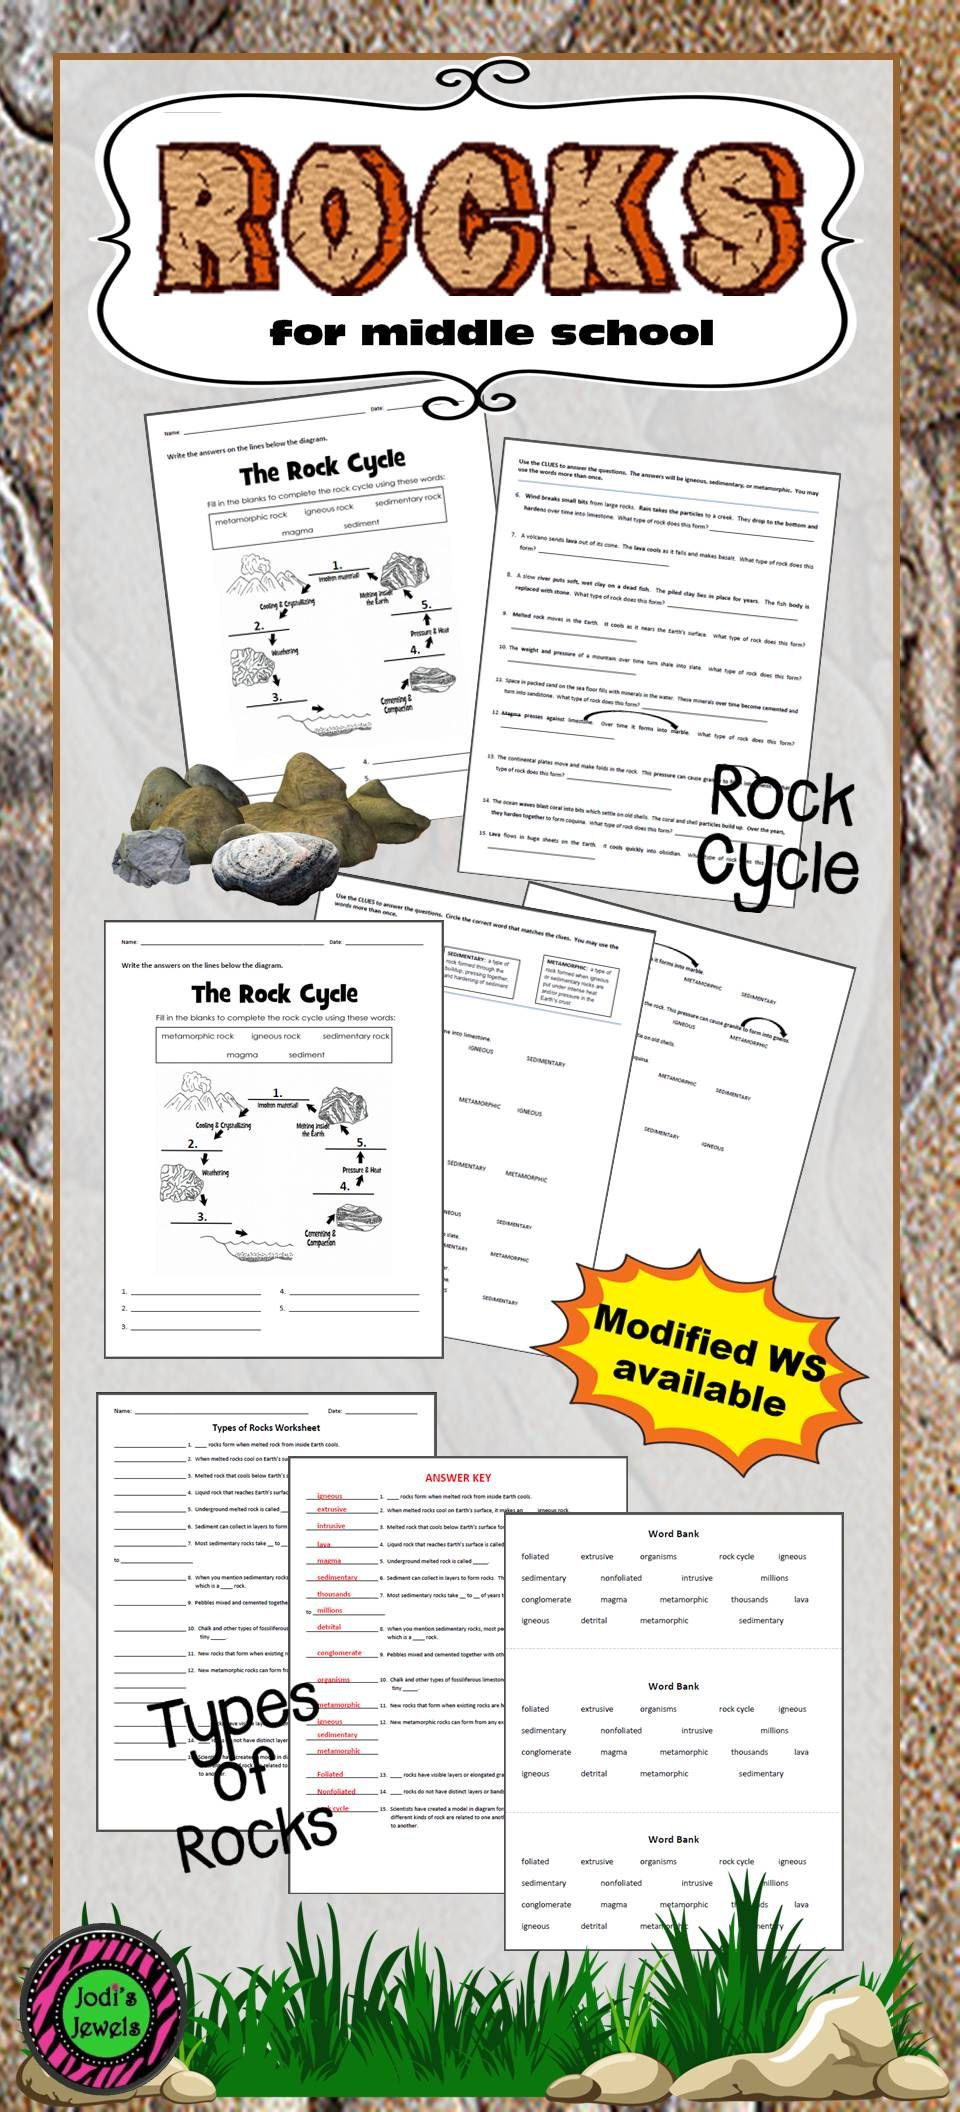 worksheet Rock Types Worksheet add worksheets about types of rocks and the rock cycle to your earth sciences units